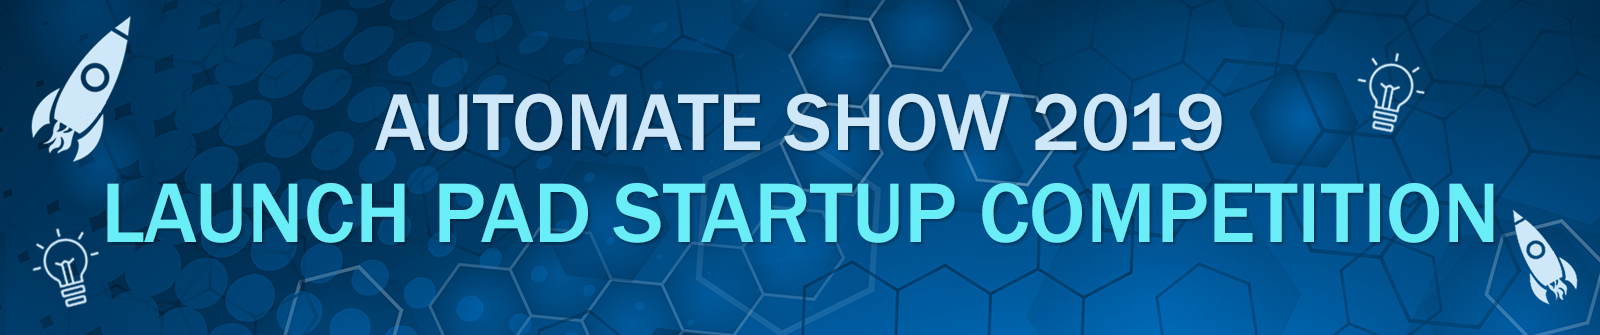 Automate Show 2019 Launch Pad Startup Competition